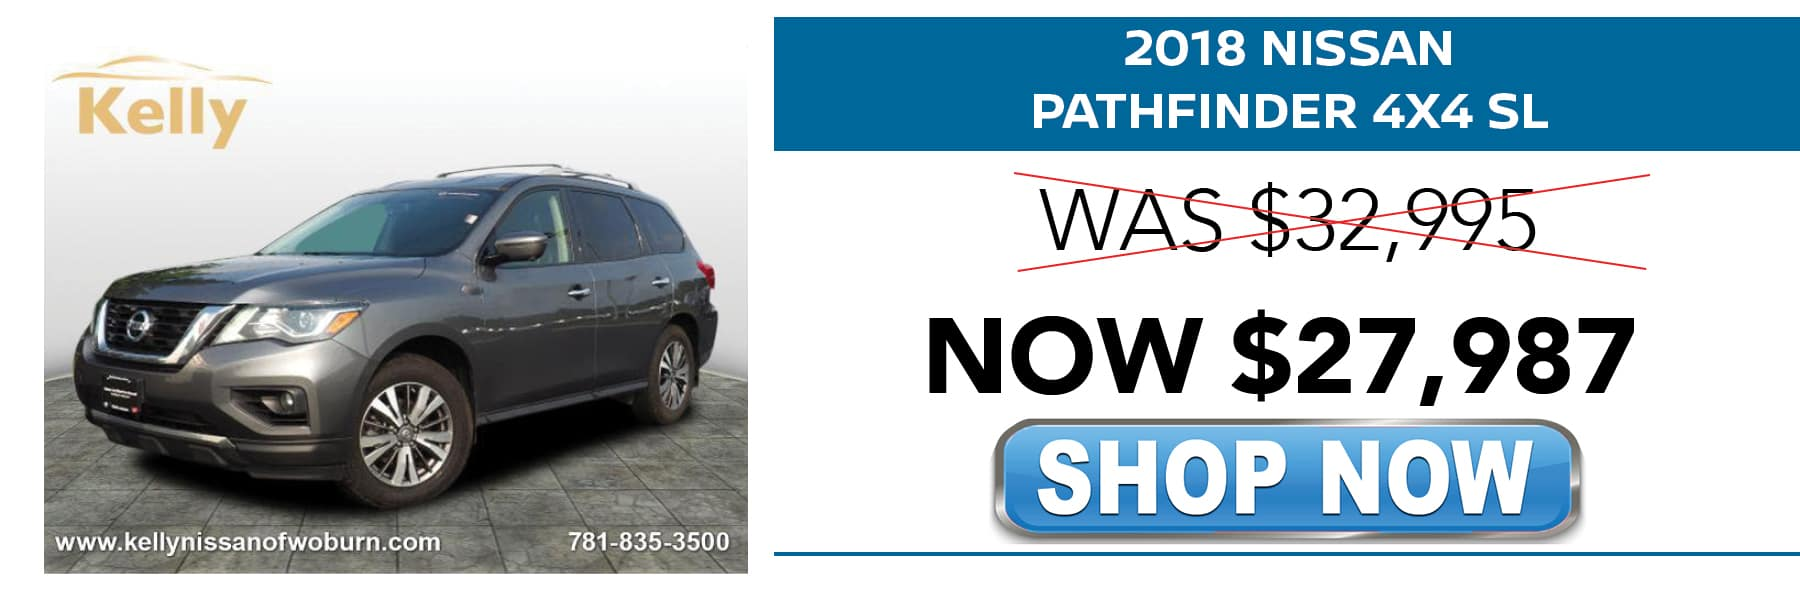 Certified Pre-Owned 2018 Nissan Pathfinder SL Now $27,987